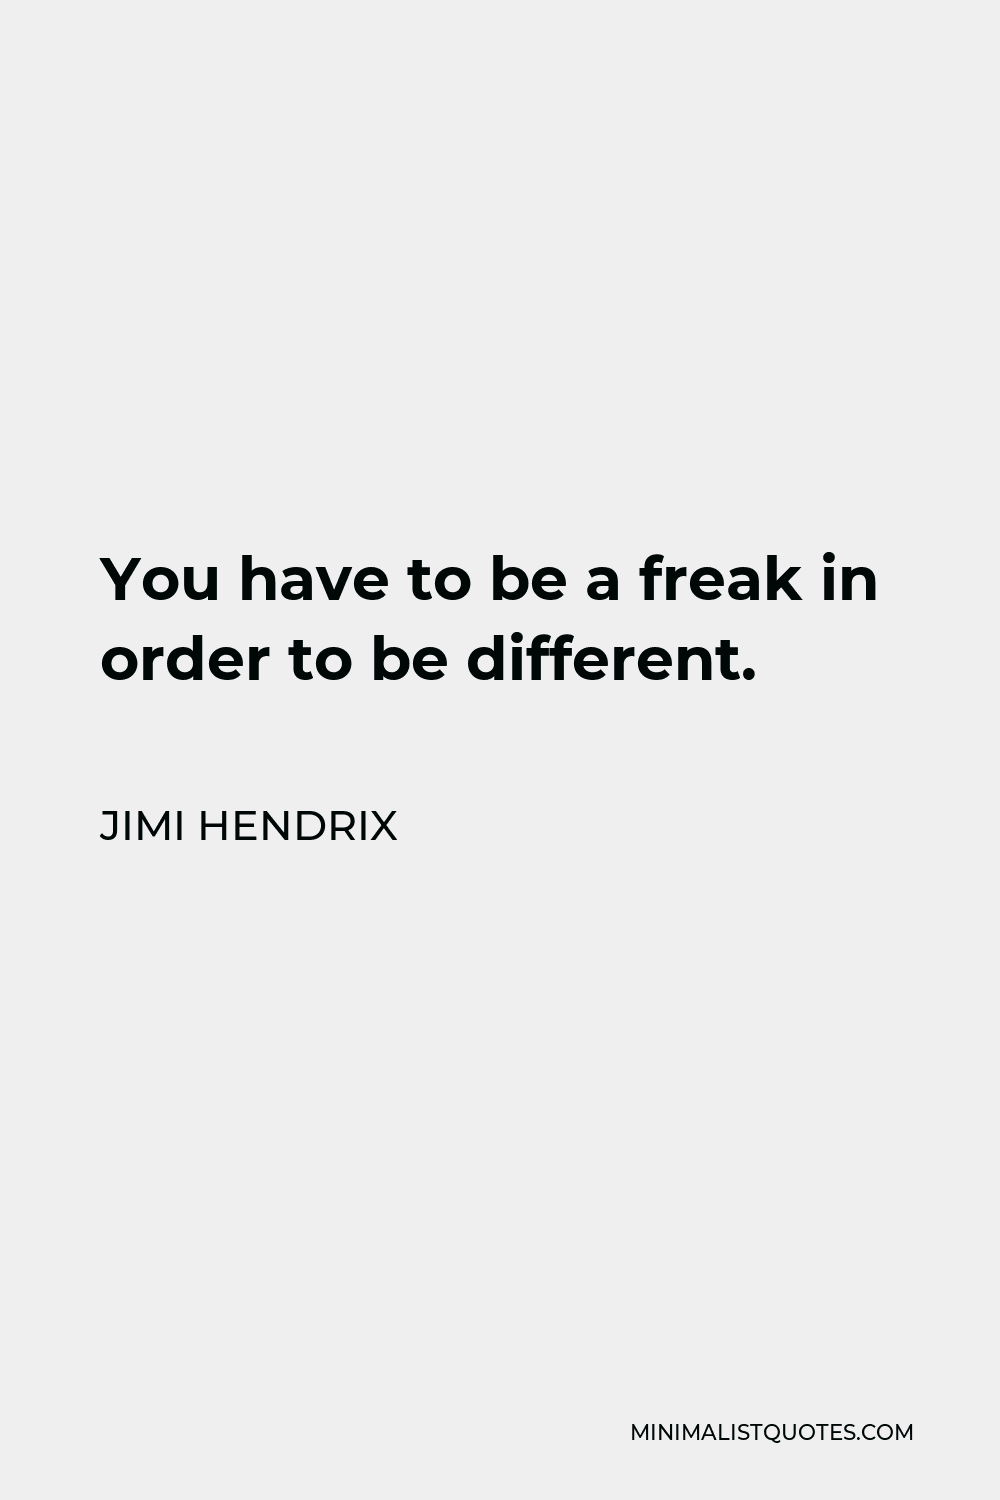 Jimi Hendrix Quote - You have to be a freak in order to be different.